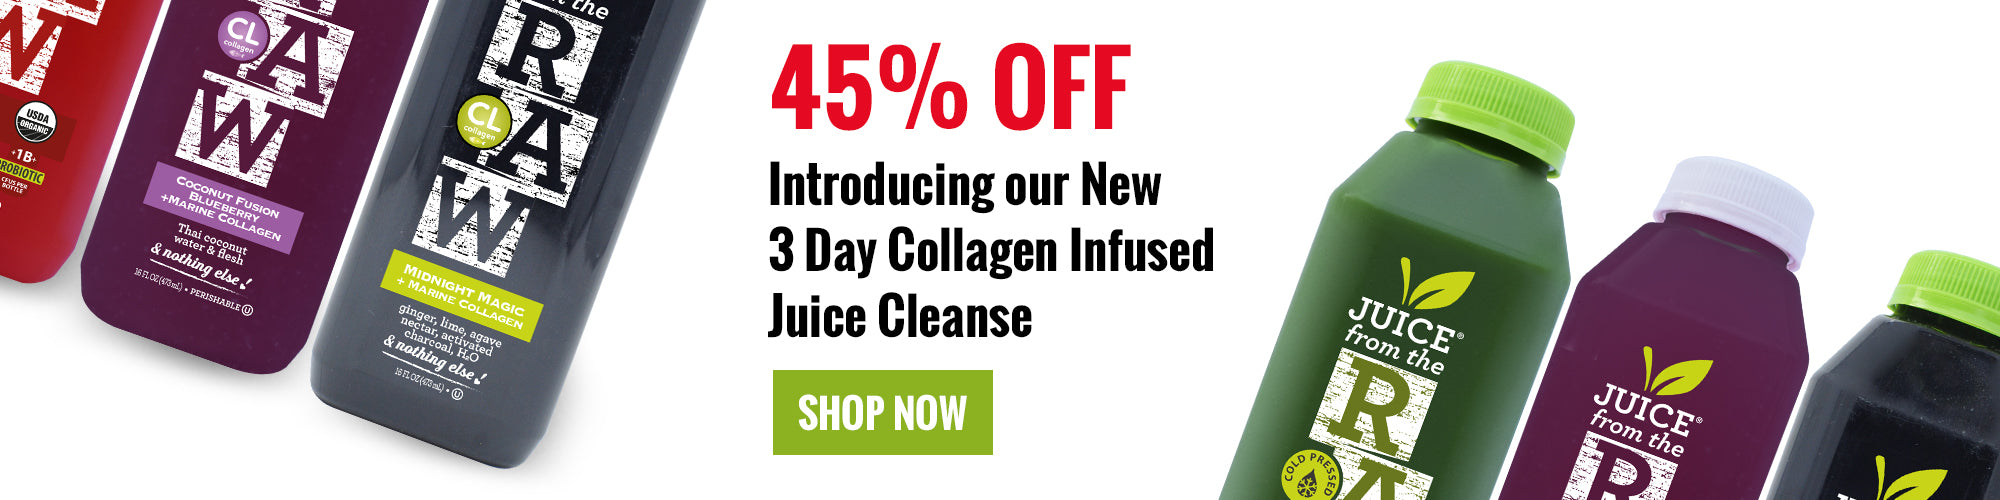 3 Day Collagen Infused Juice Cleanse